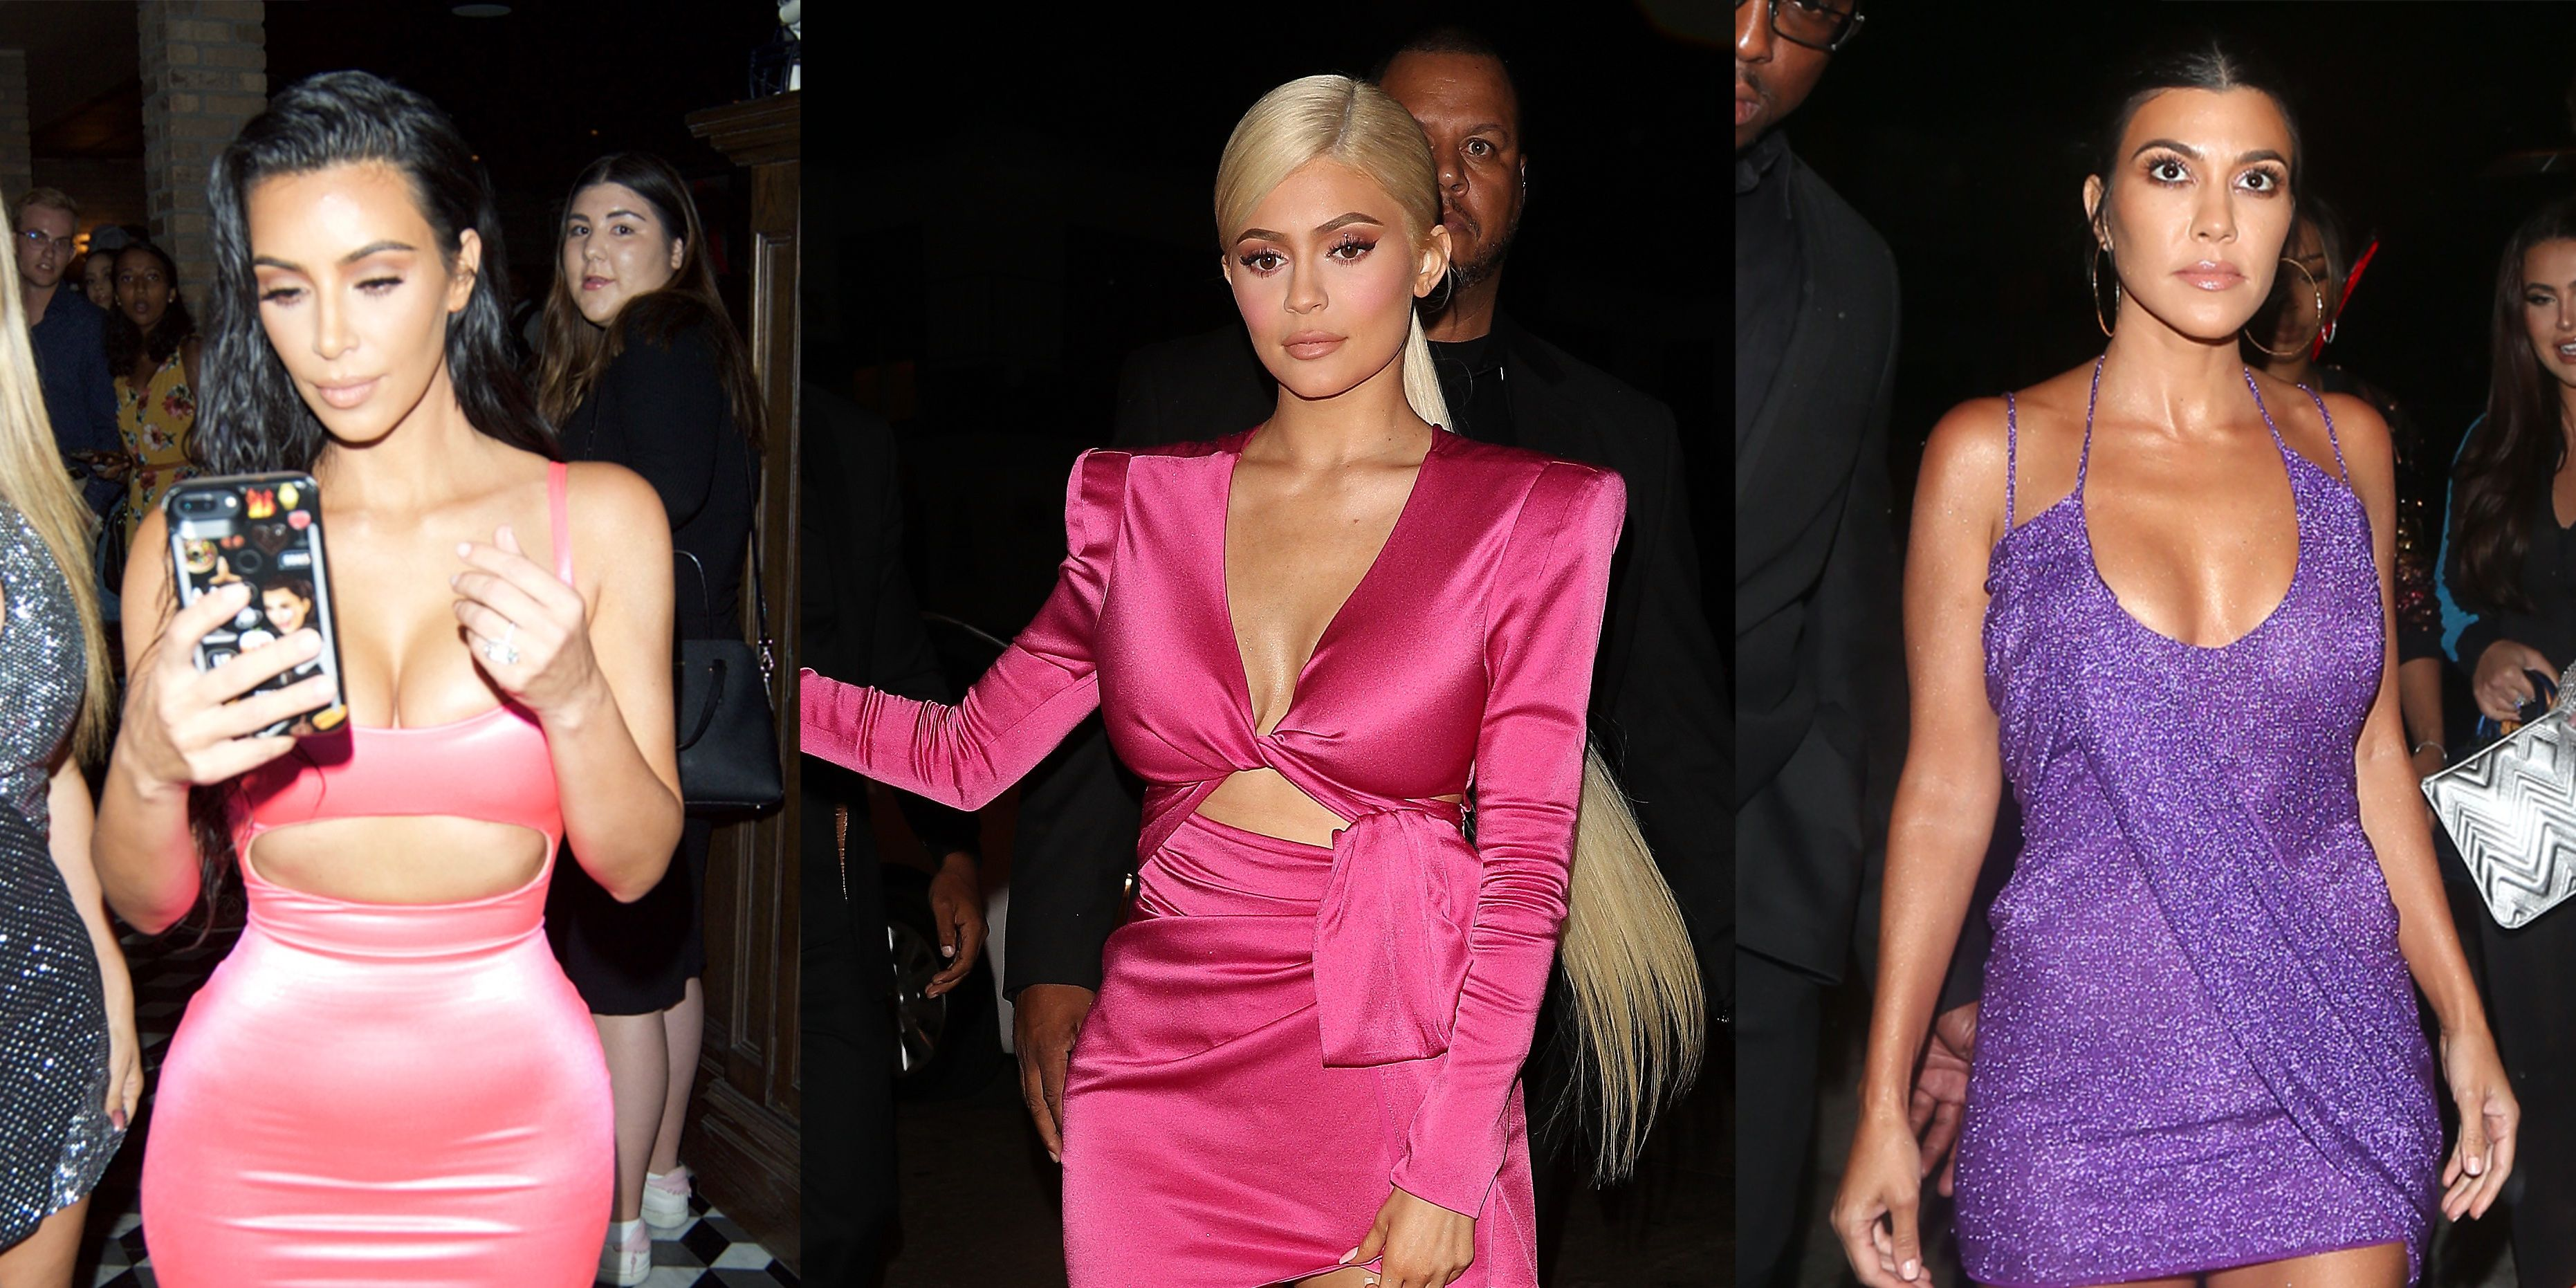 18 Geburtstag Party Outfit Kylie Jenner S 21st Birthday Party Was Barbie Themed Attended By